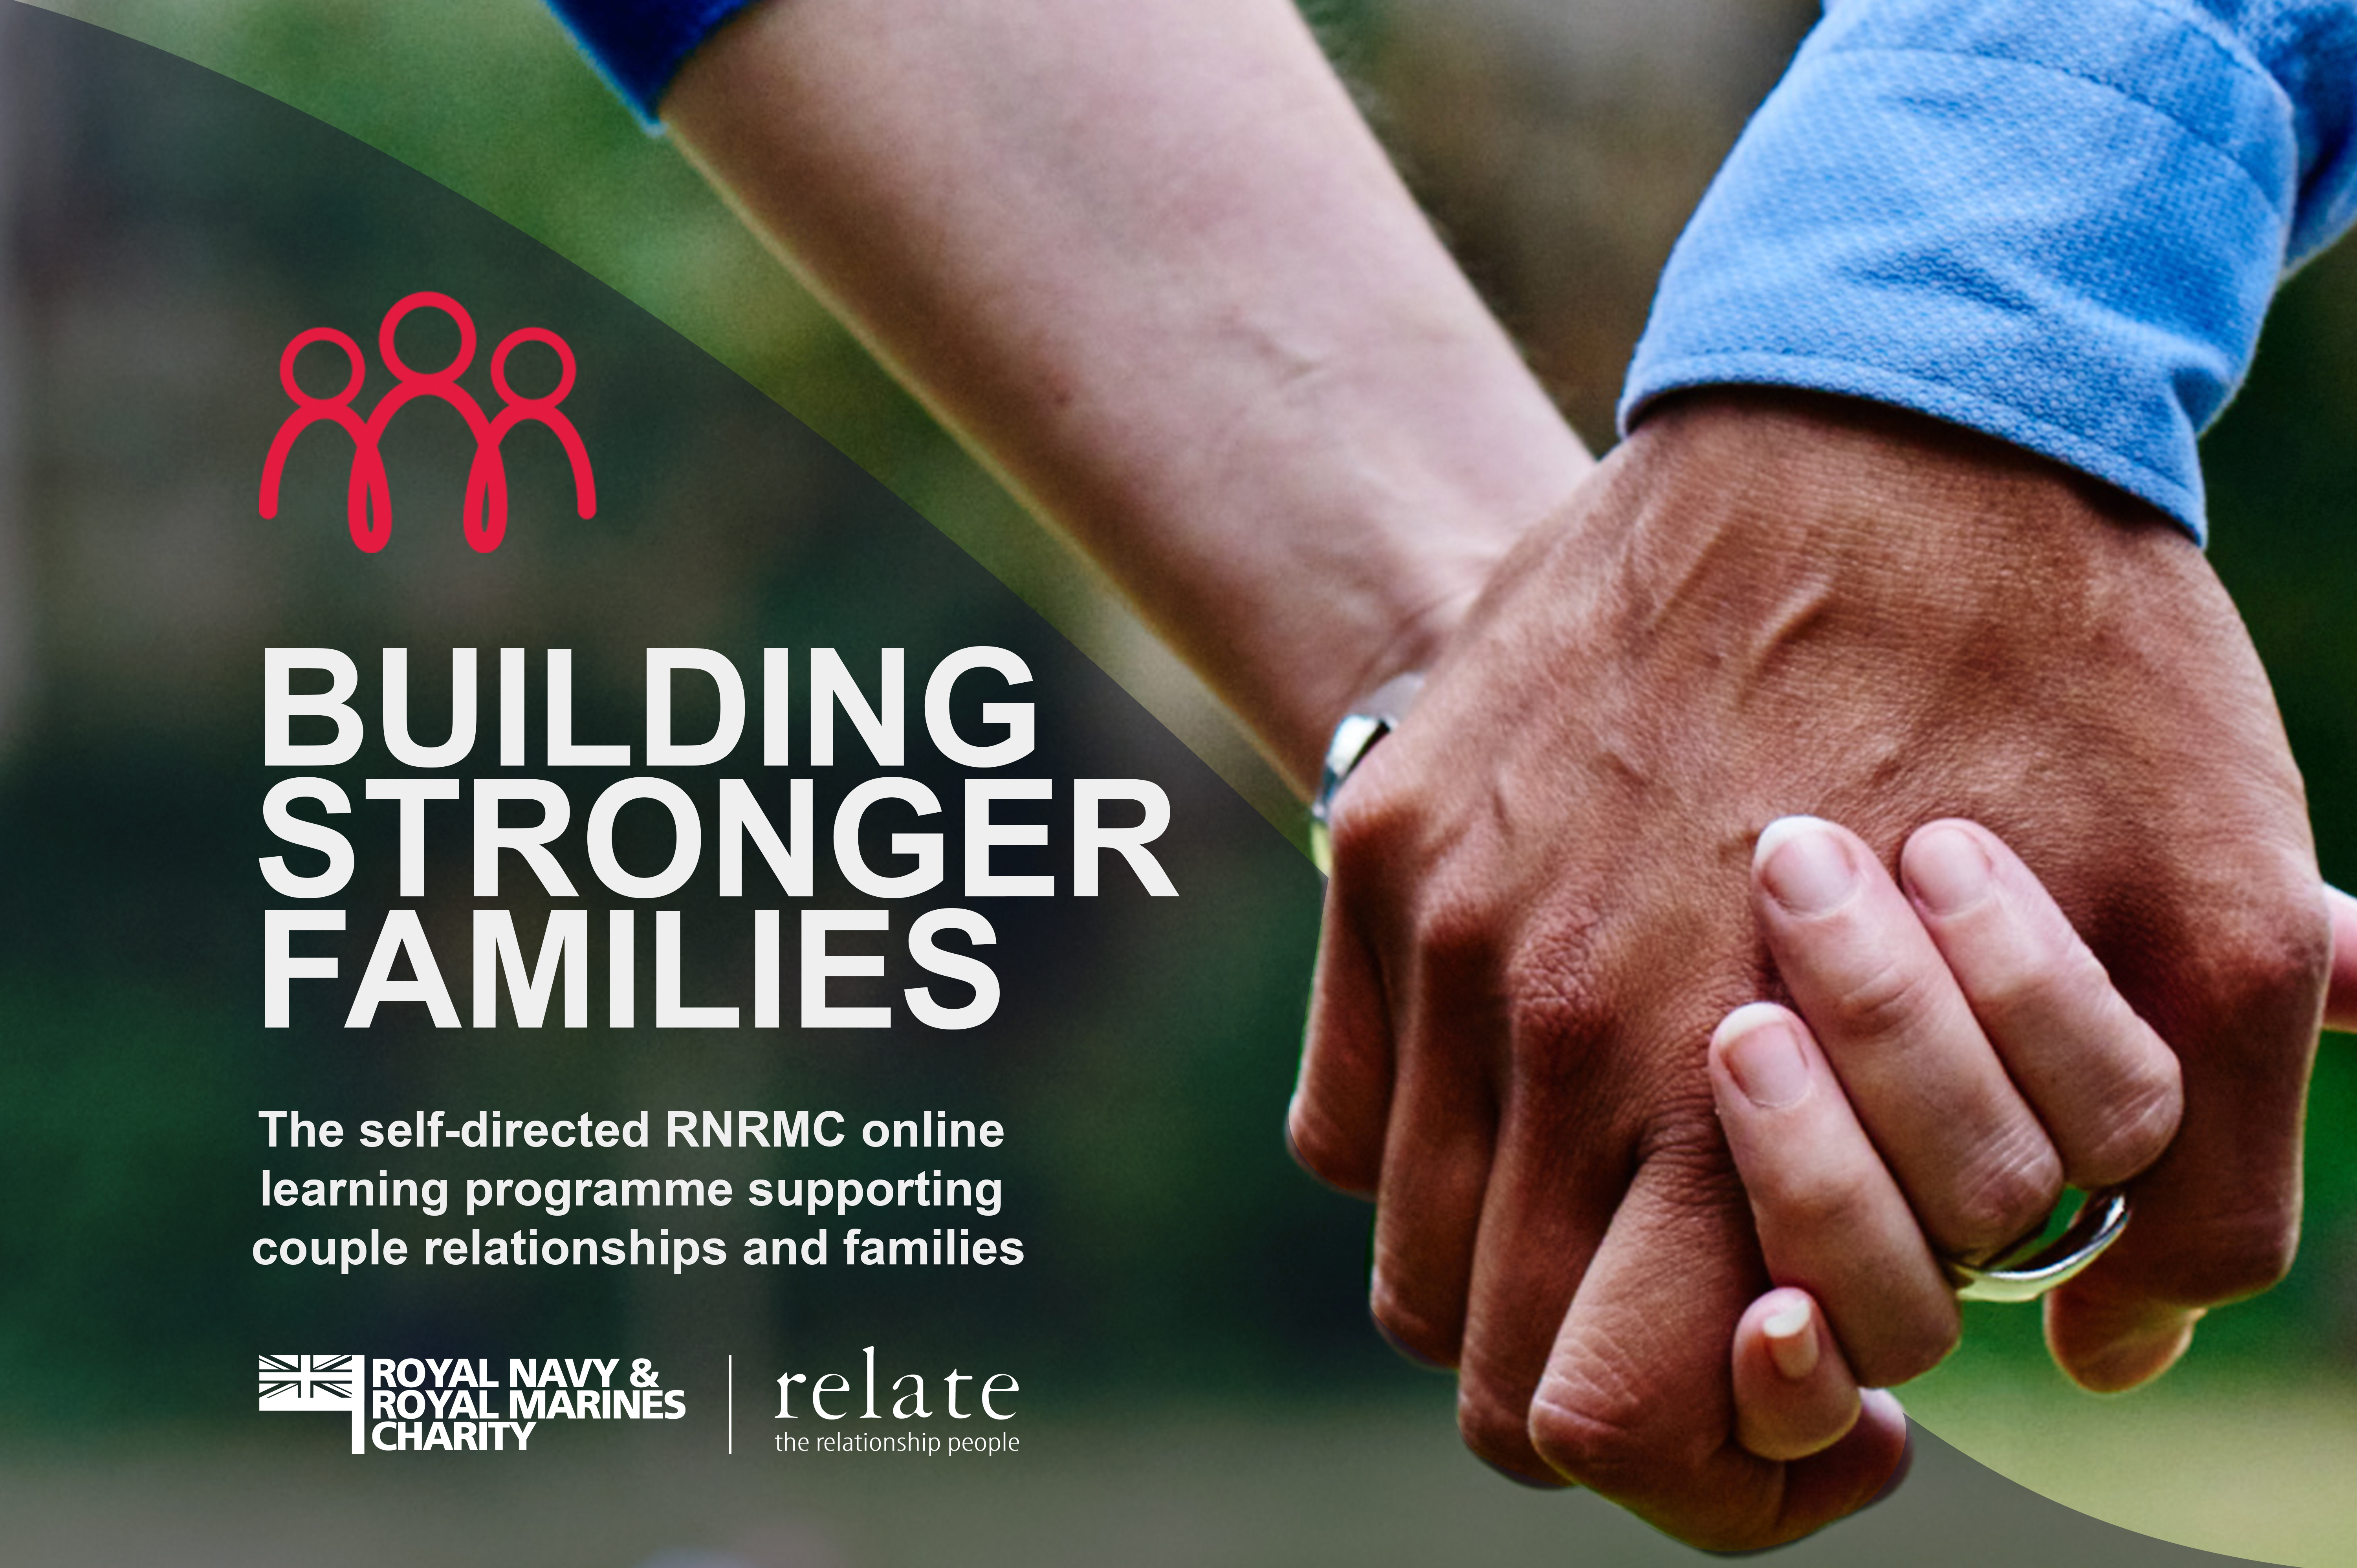 Building stronger families poster.